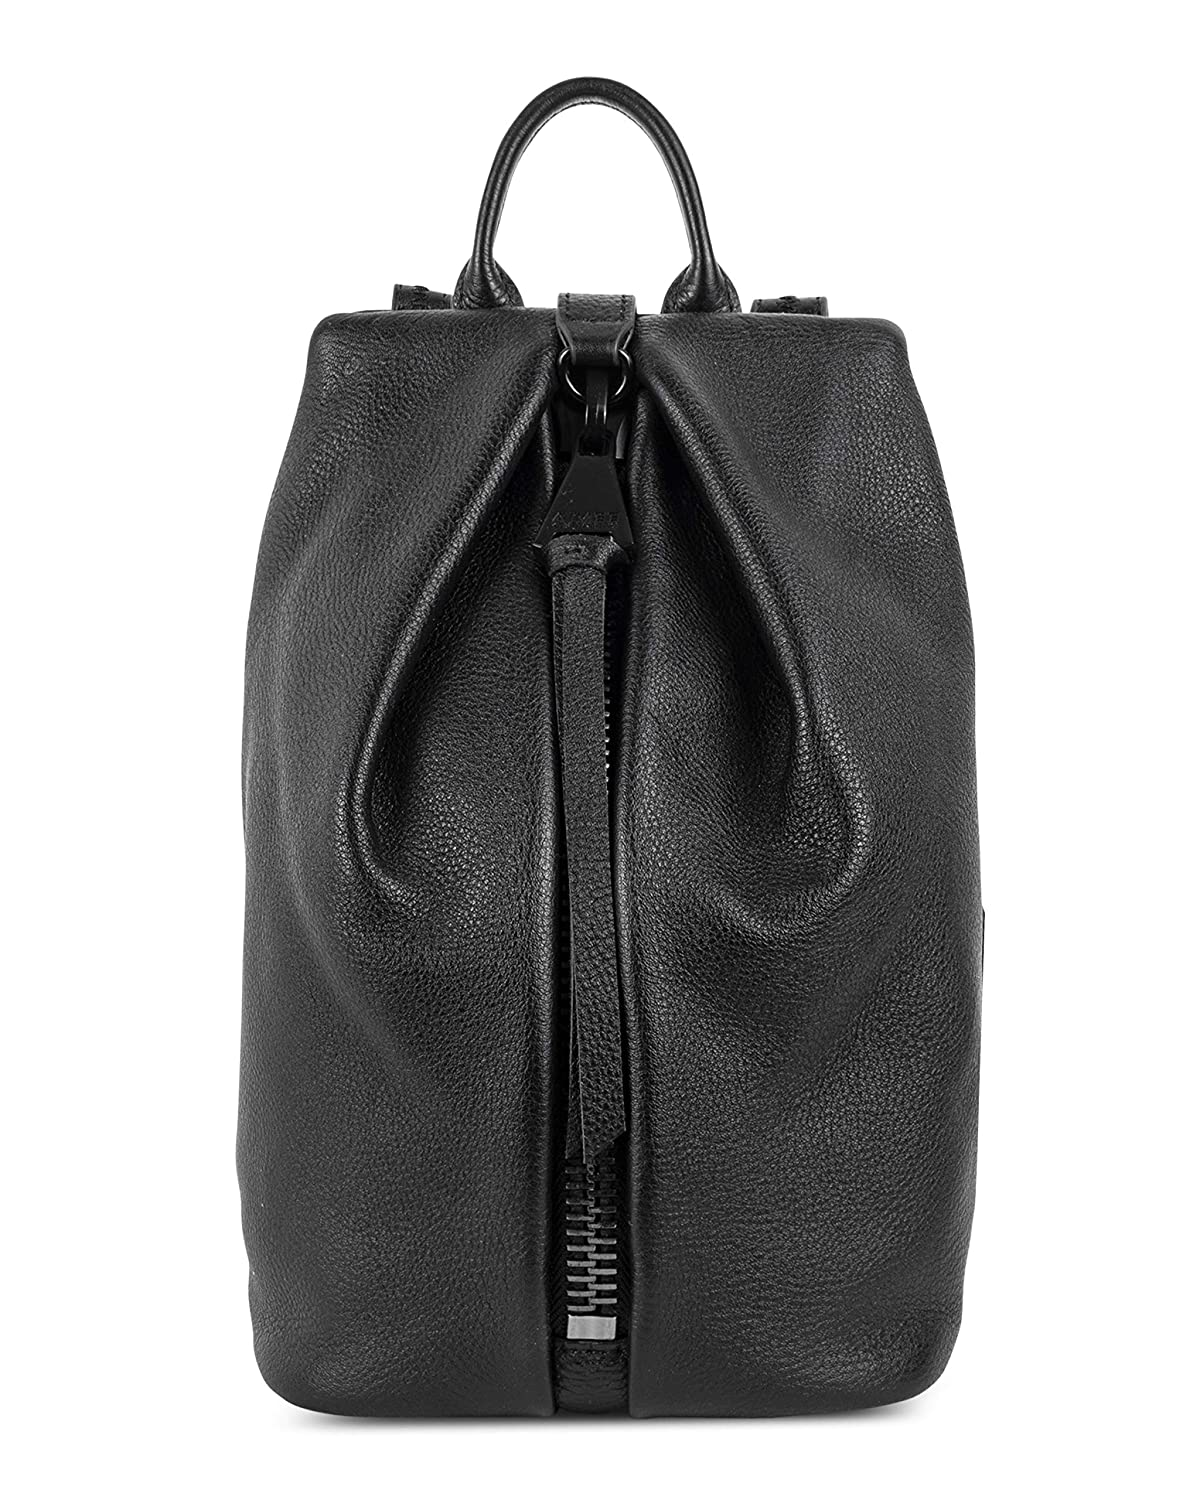 Image of Casual Daypacks Aimee Kestenberg Leather Tamitha Mini Fashion Backpack